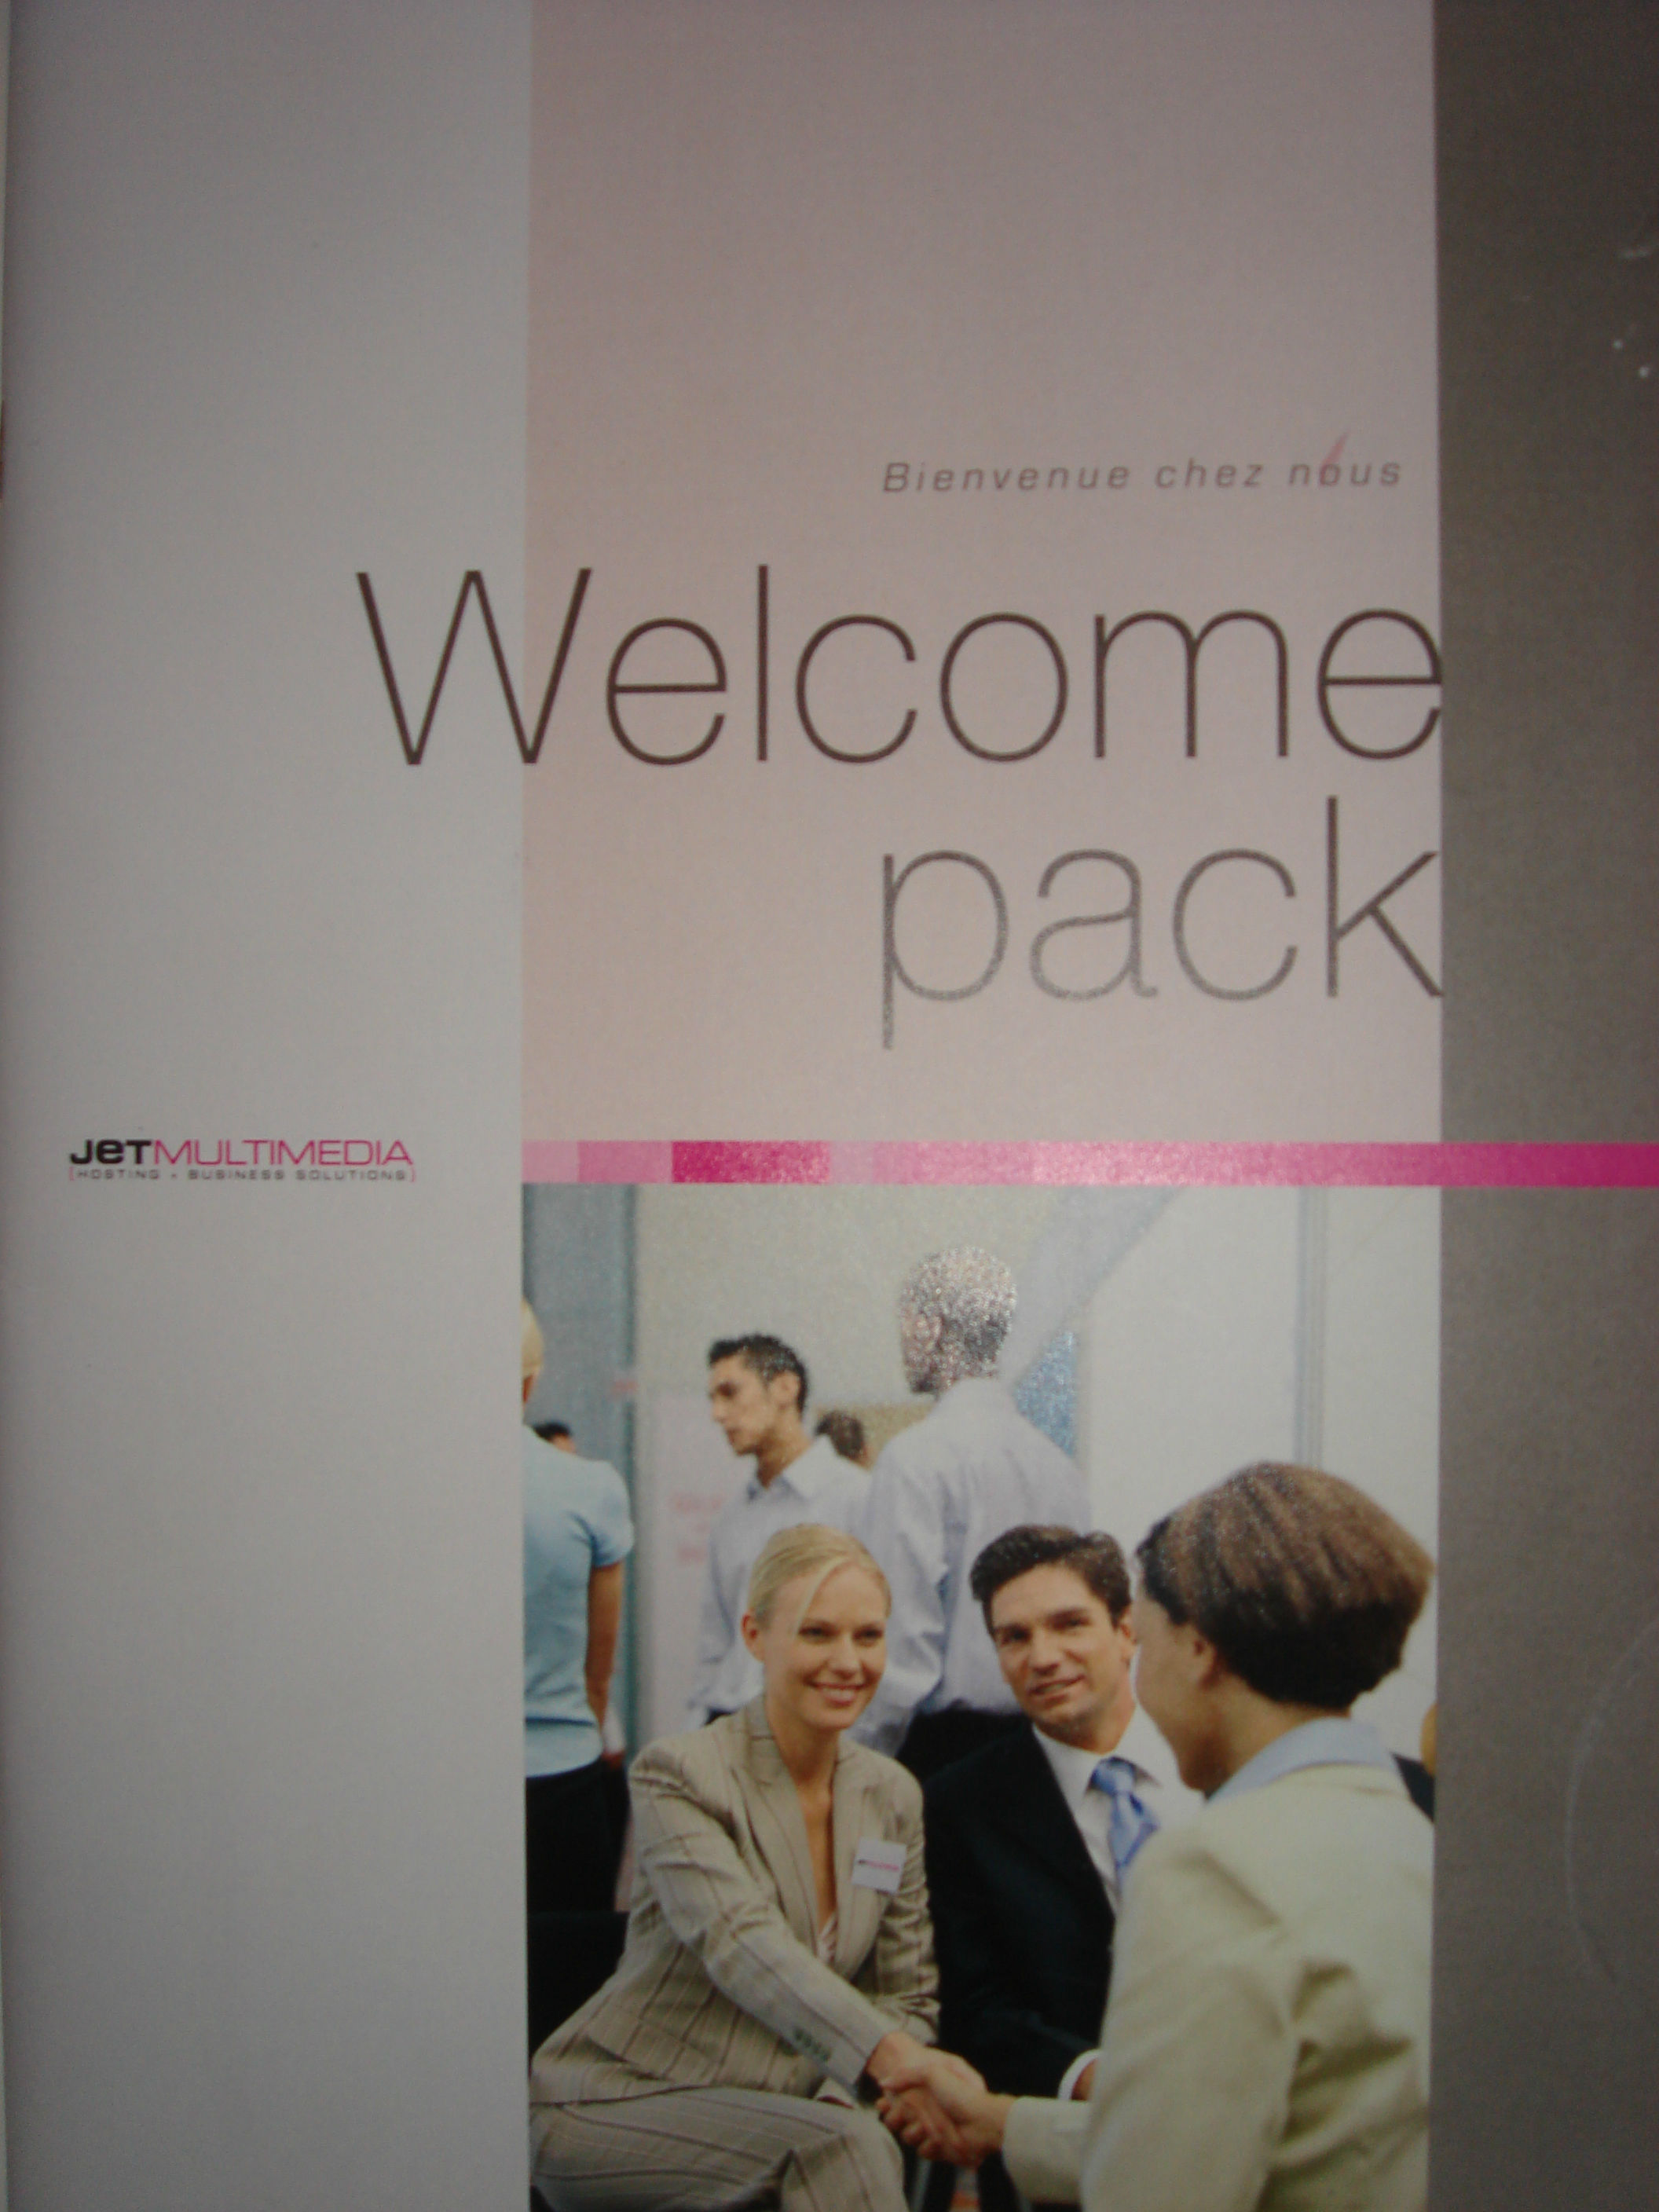 HR Welcome Book: Contribution to emp